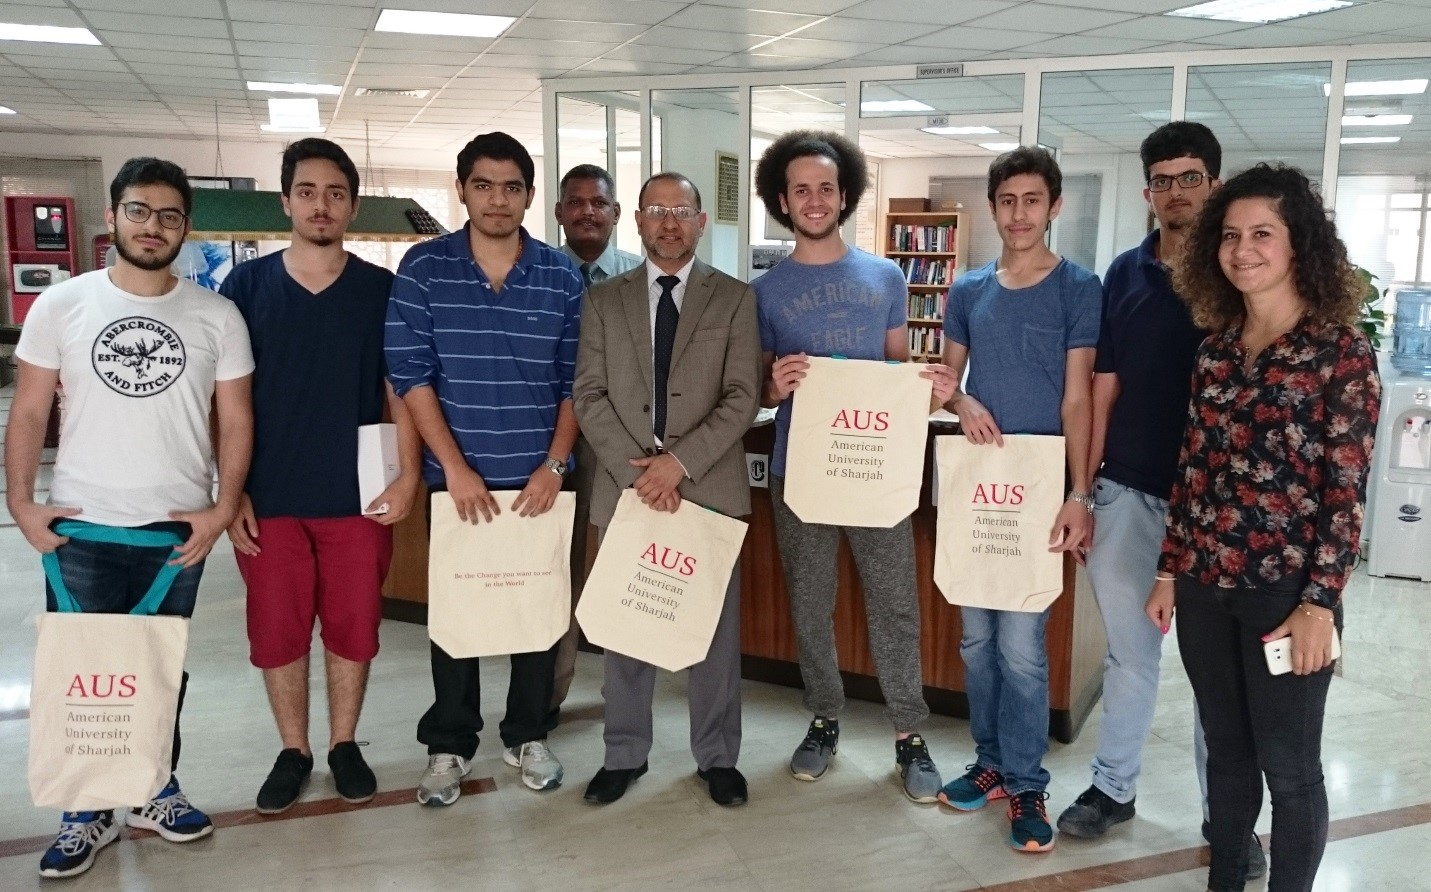 American_University_of_Sharjah_Evergy_Saving_Competition_10.jpg